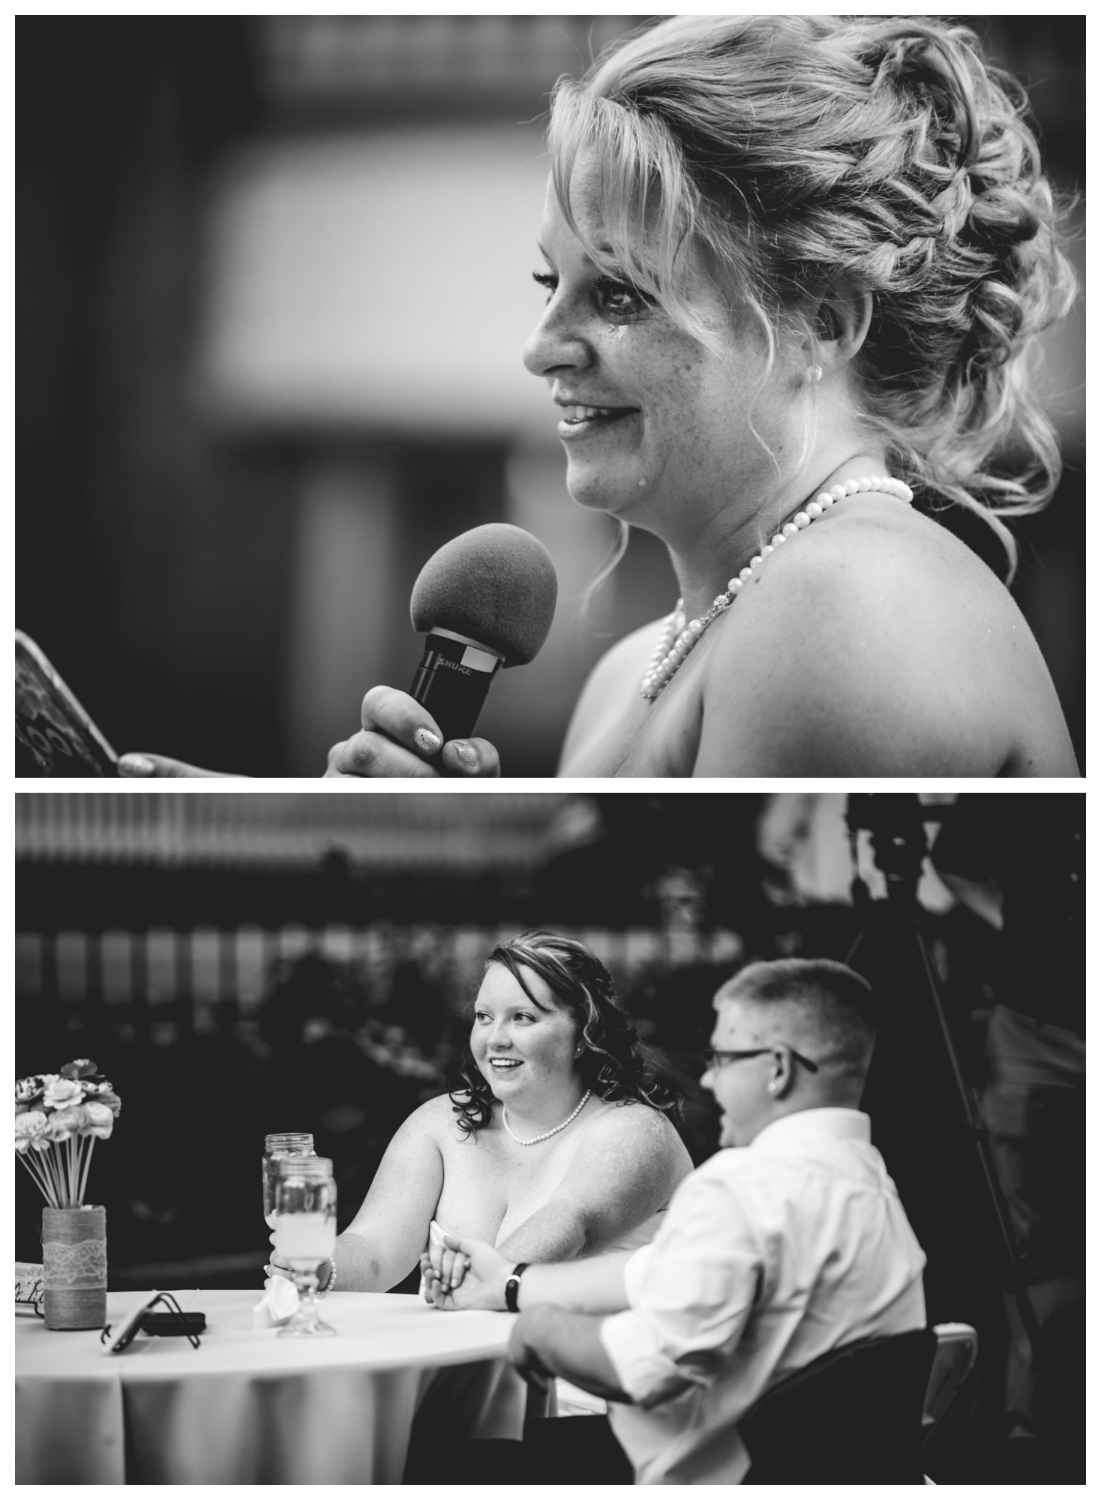 Wedding toasts given by the brides mom.Photographed by JMGant Photography.